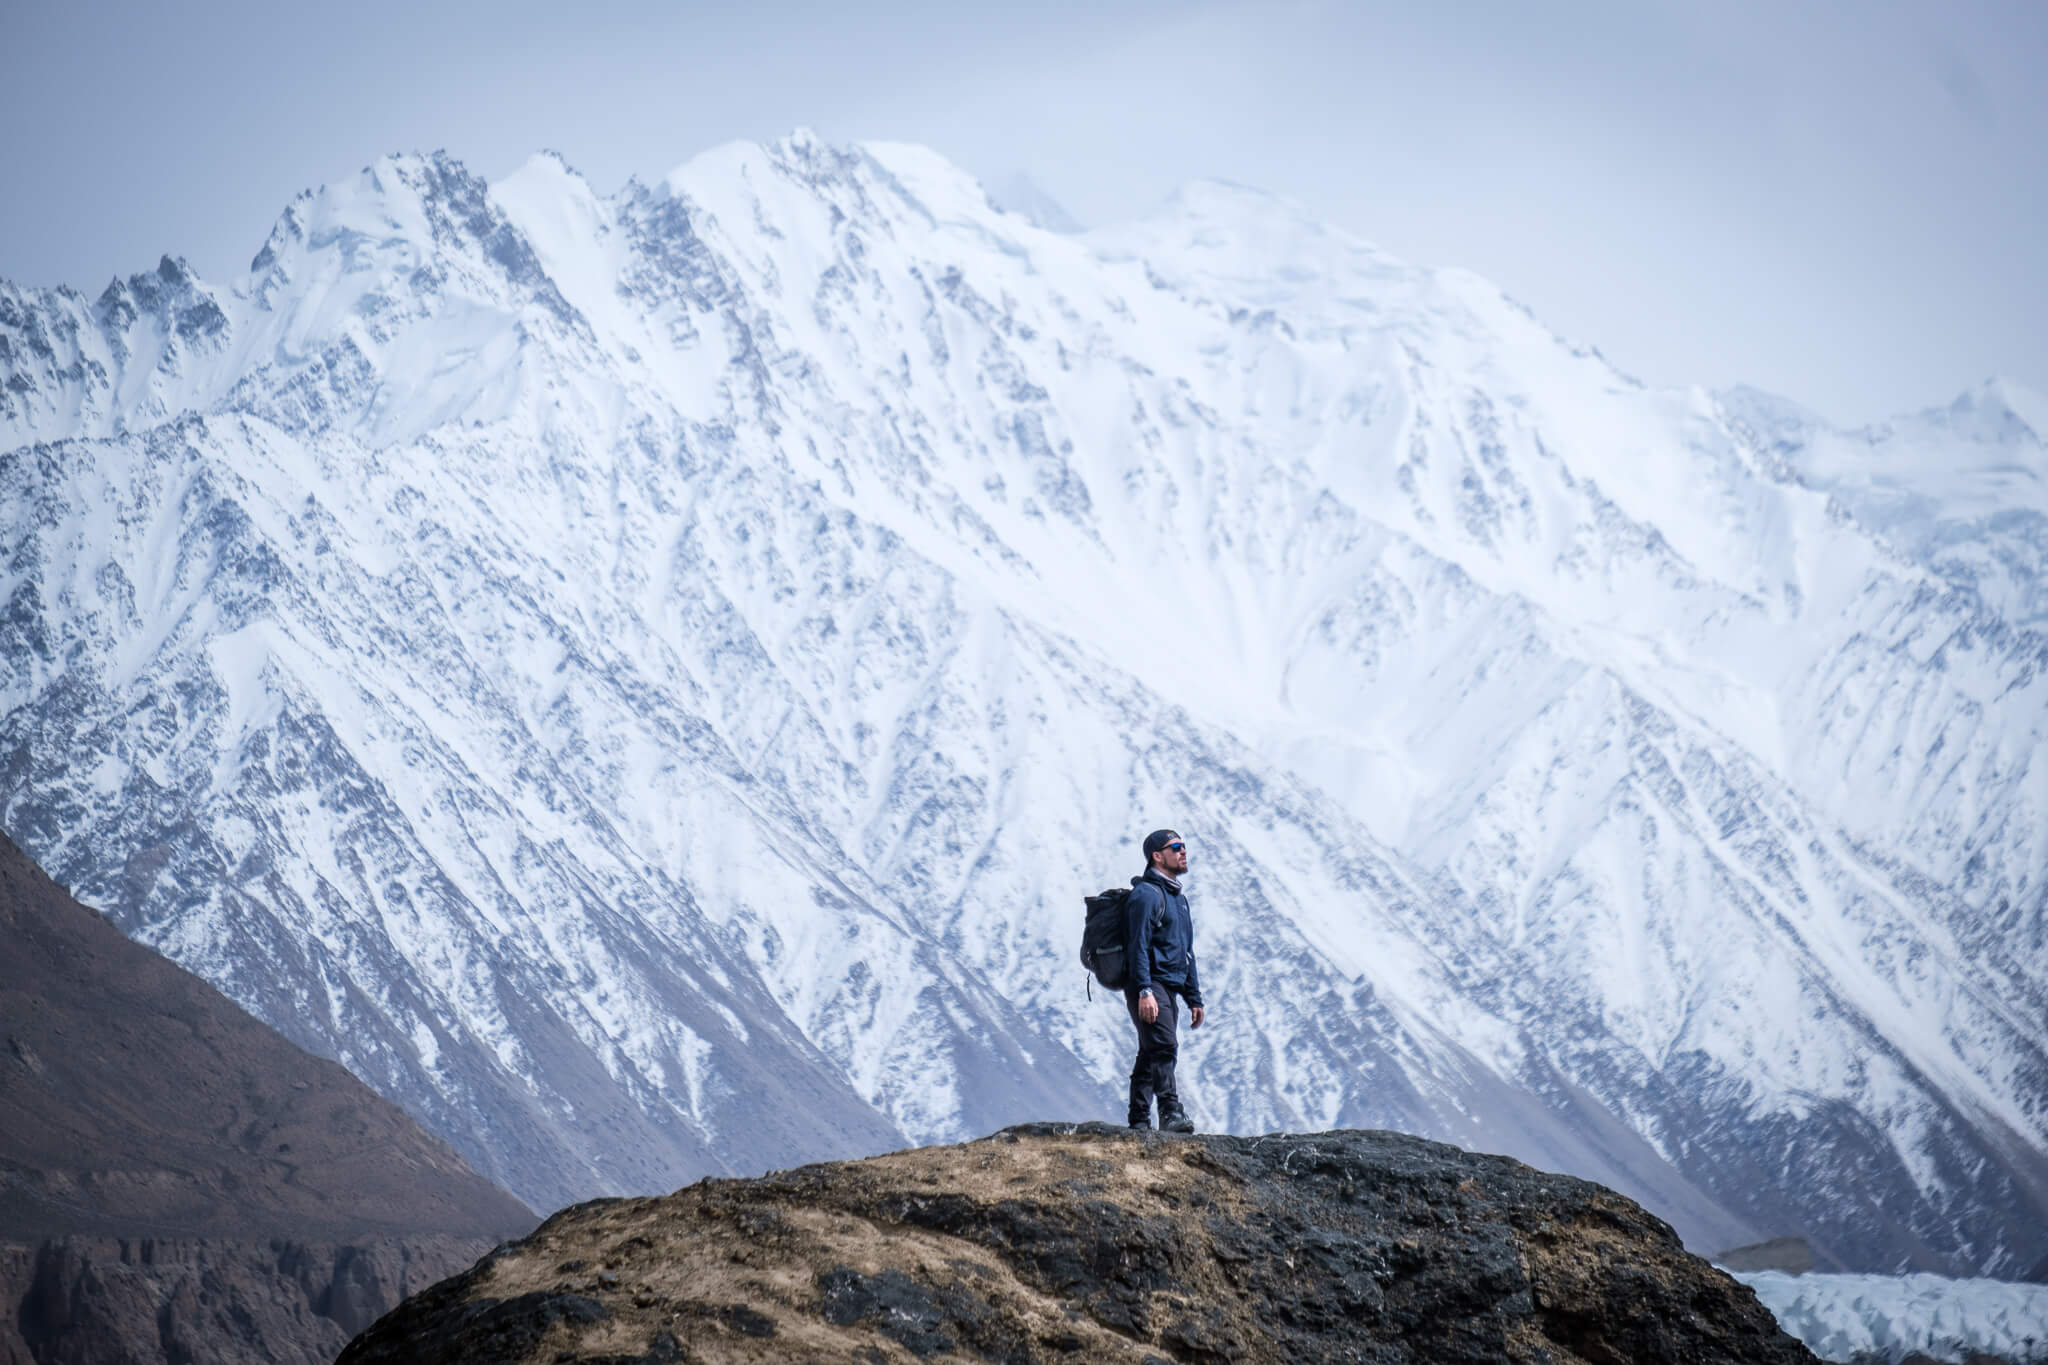 guy standing underneath snow capped mountain